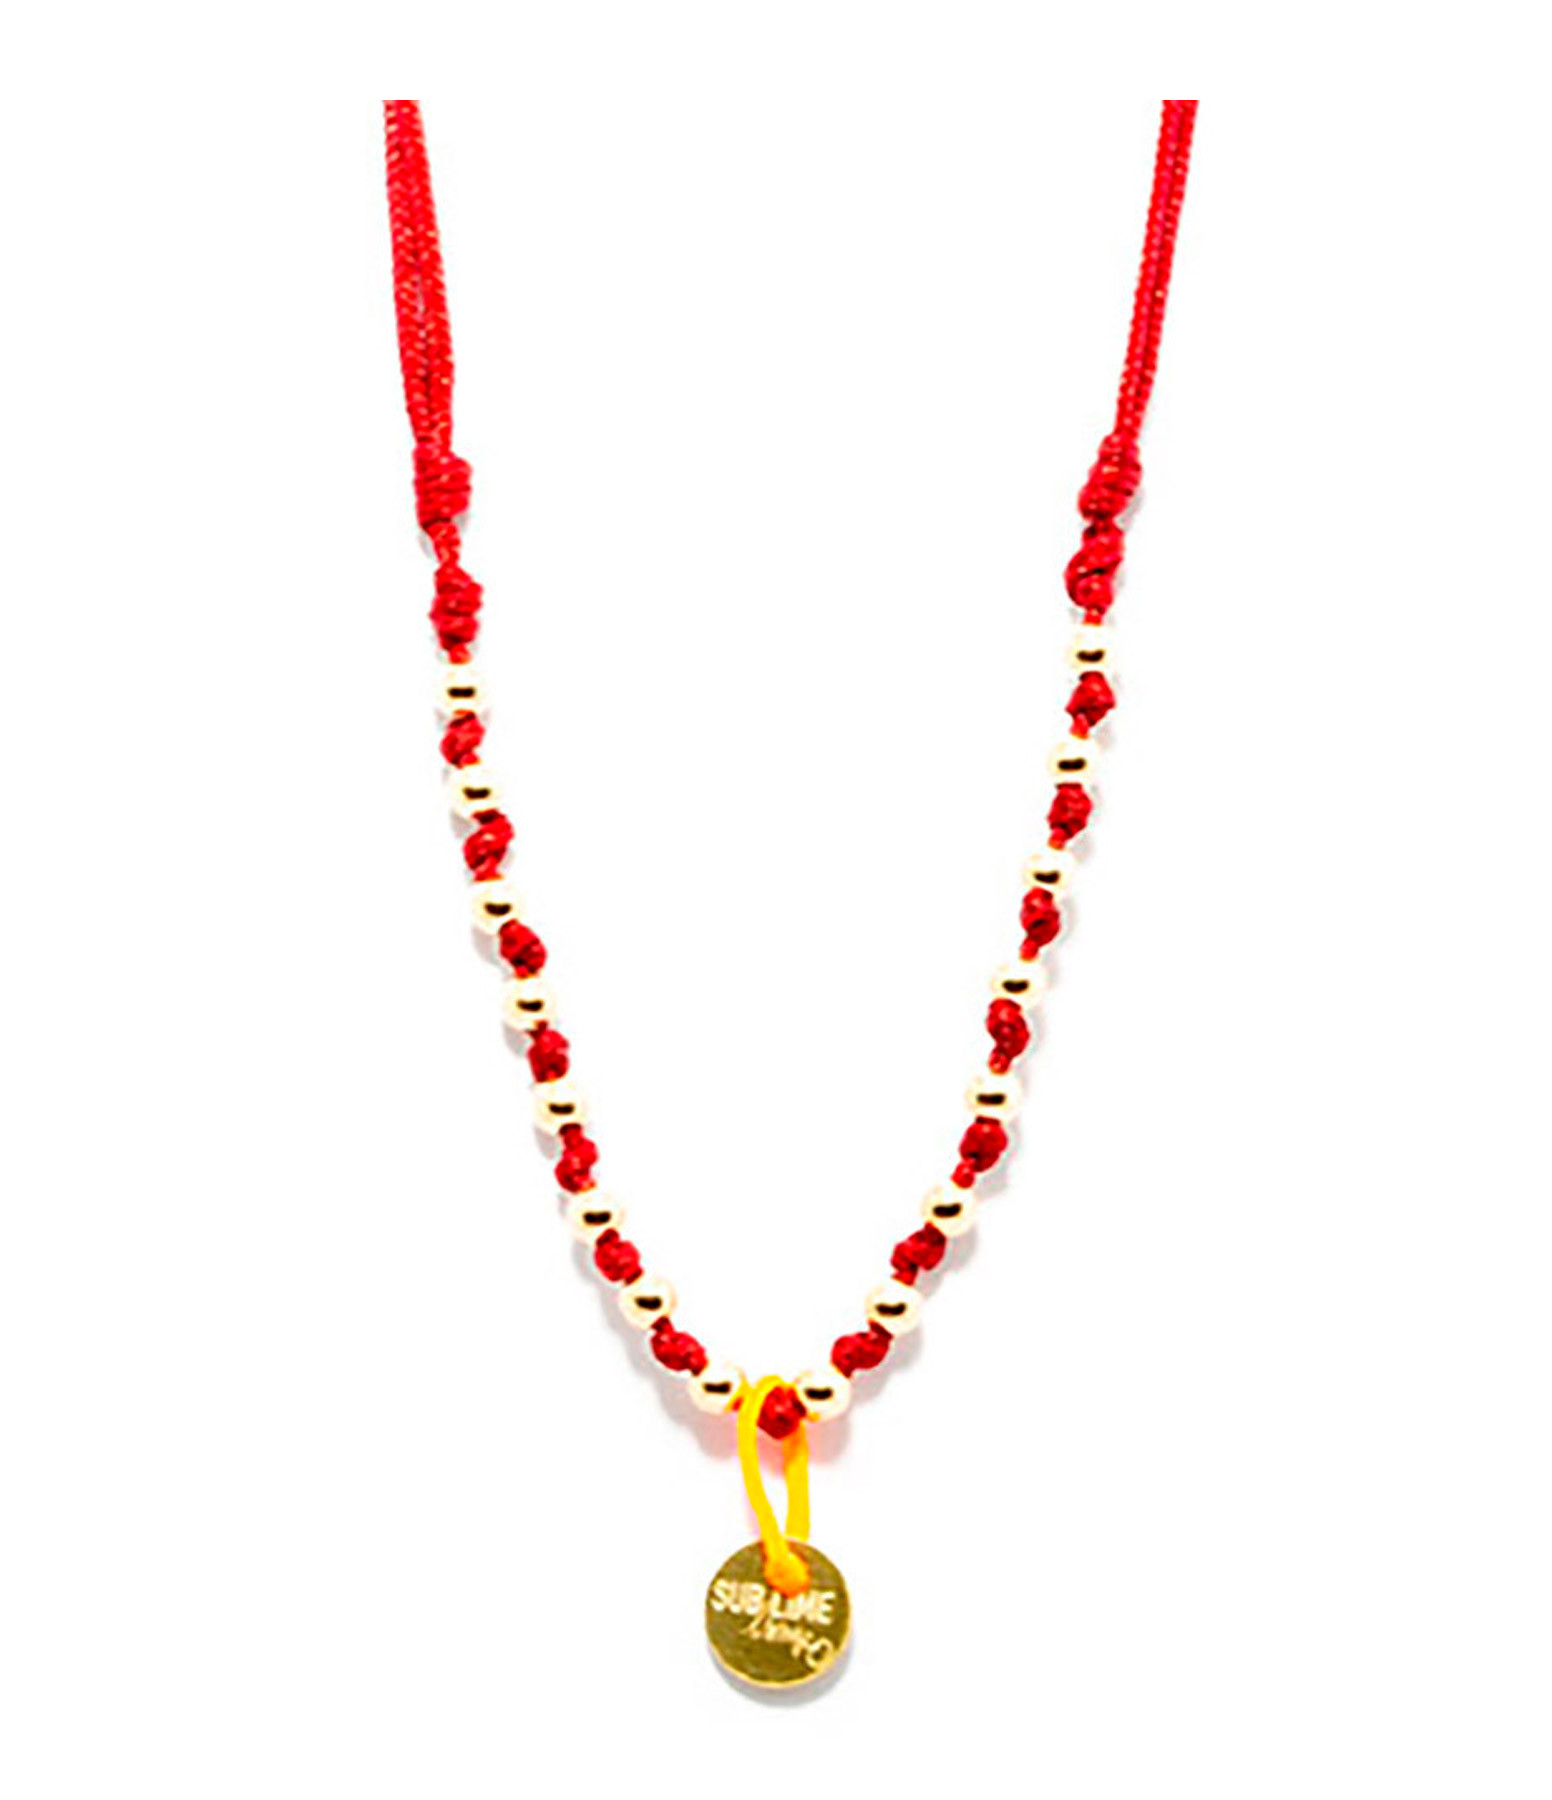 LSONGE - Collier Sublime M Comme Méditer 16 Perles Rubis Or